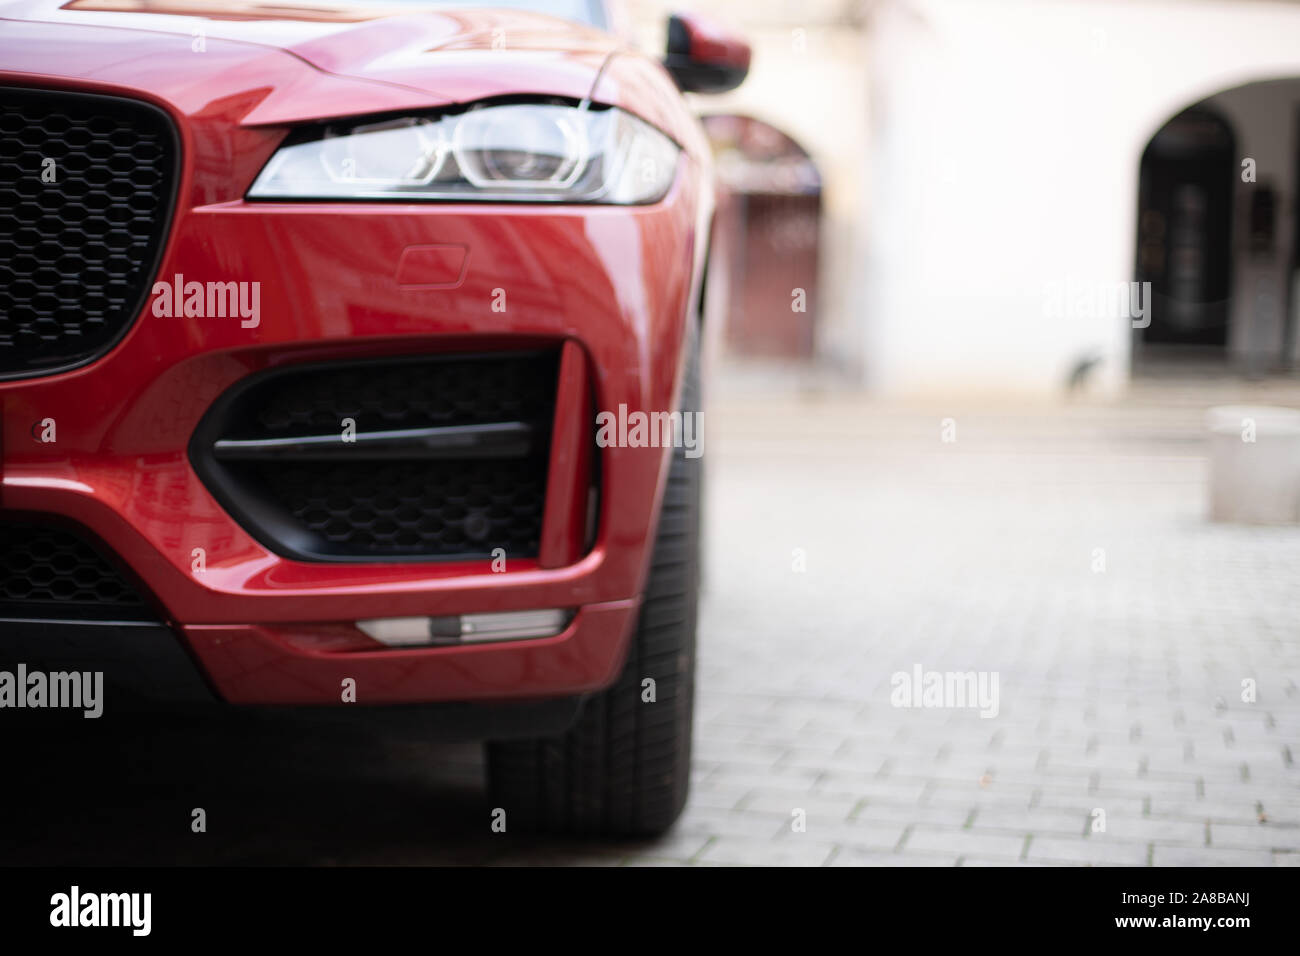 cars parked in the central streets of big cities Stock Photo